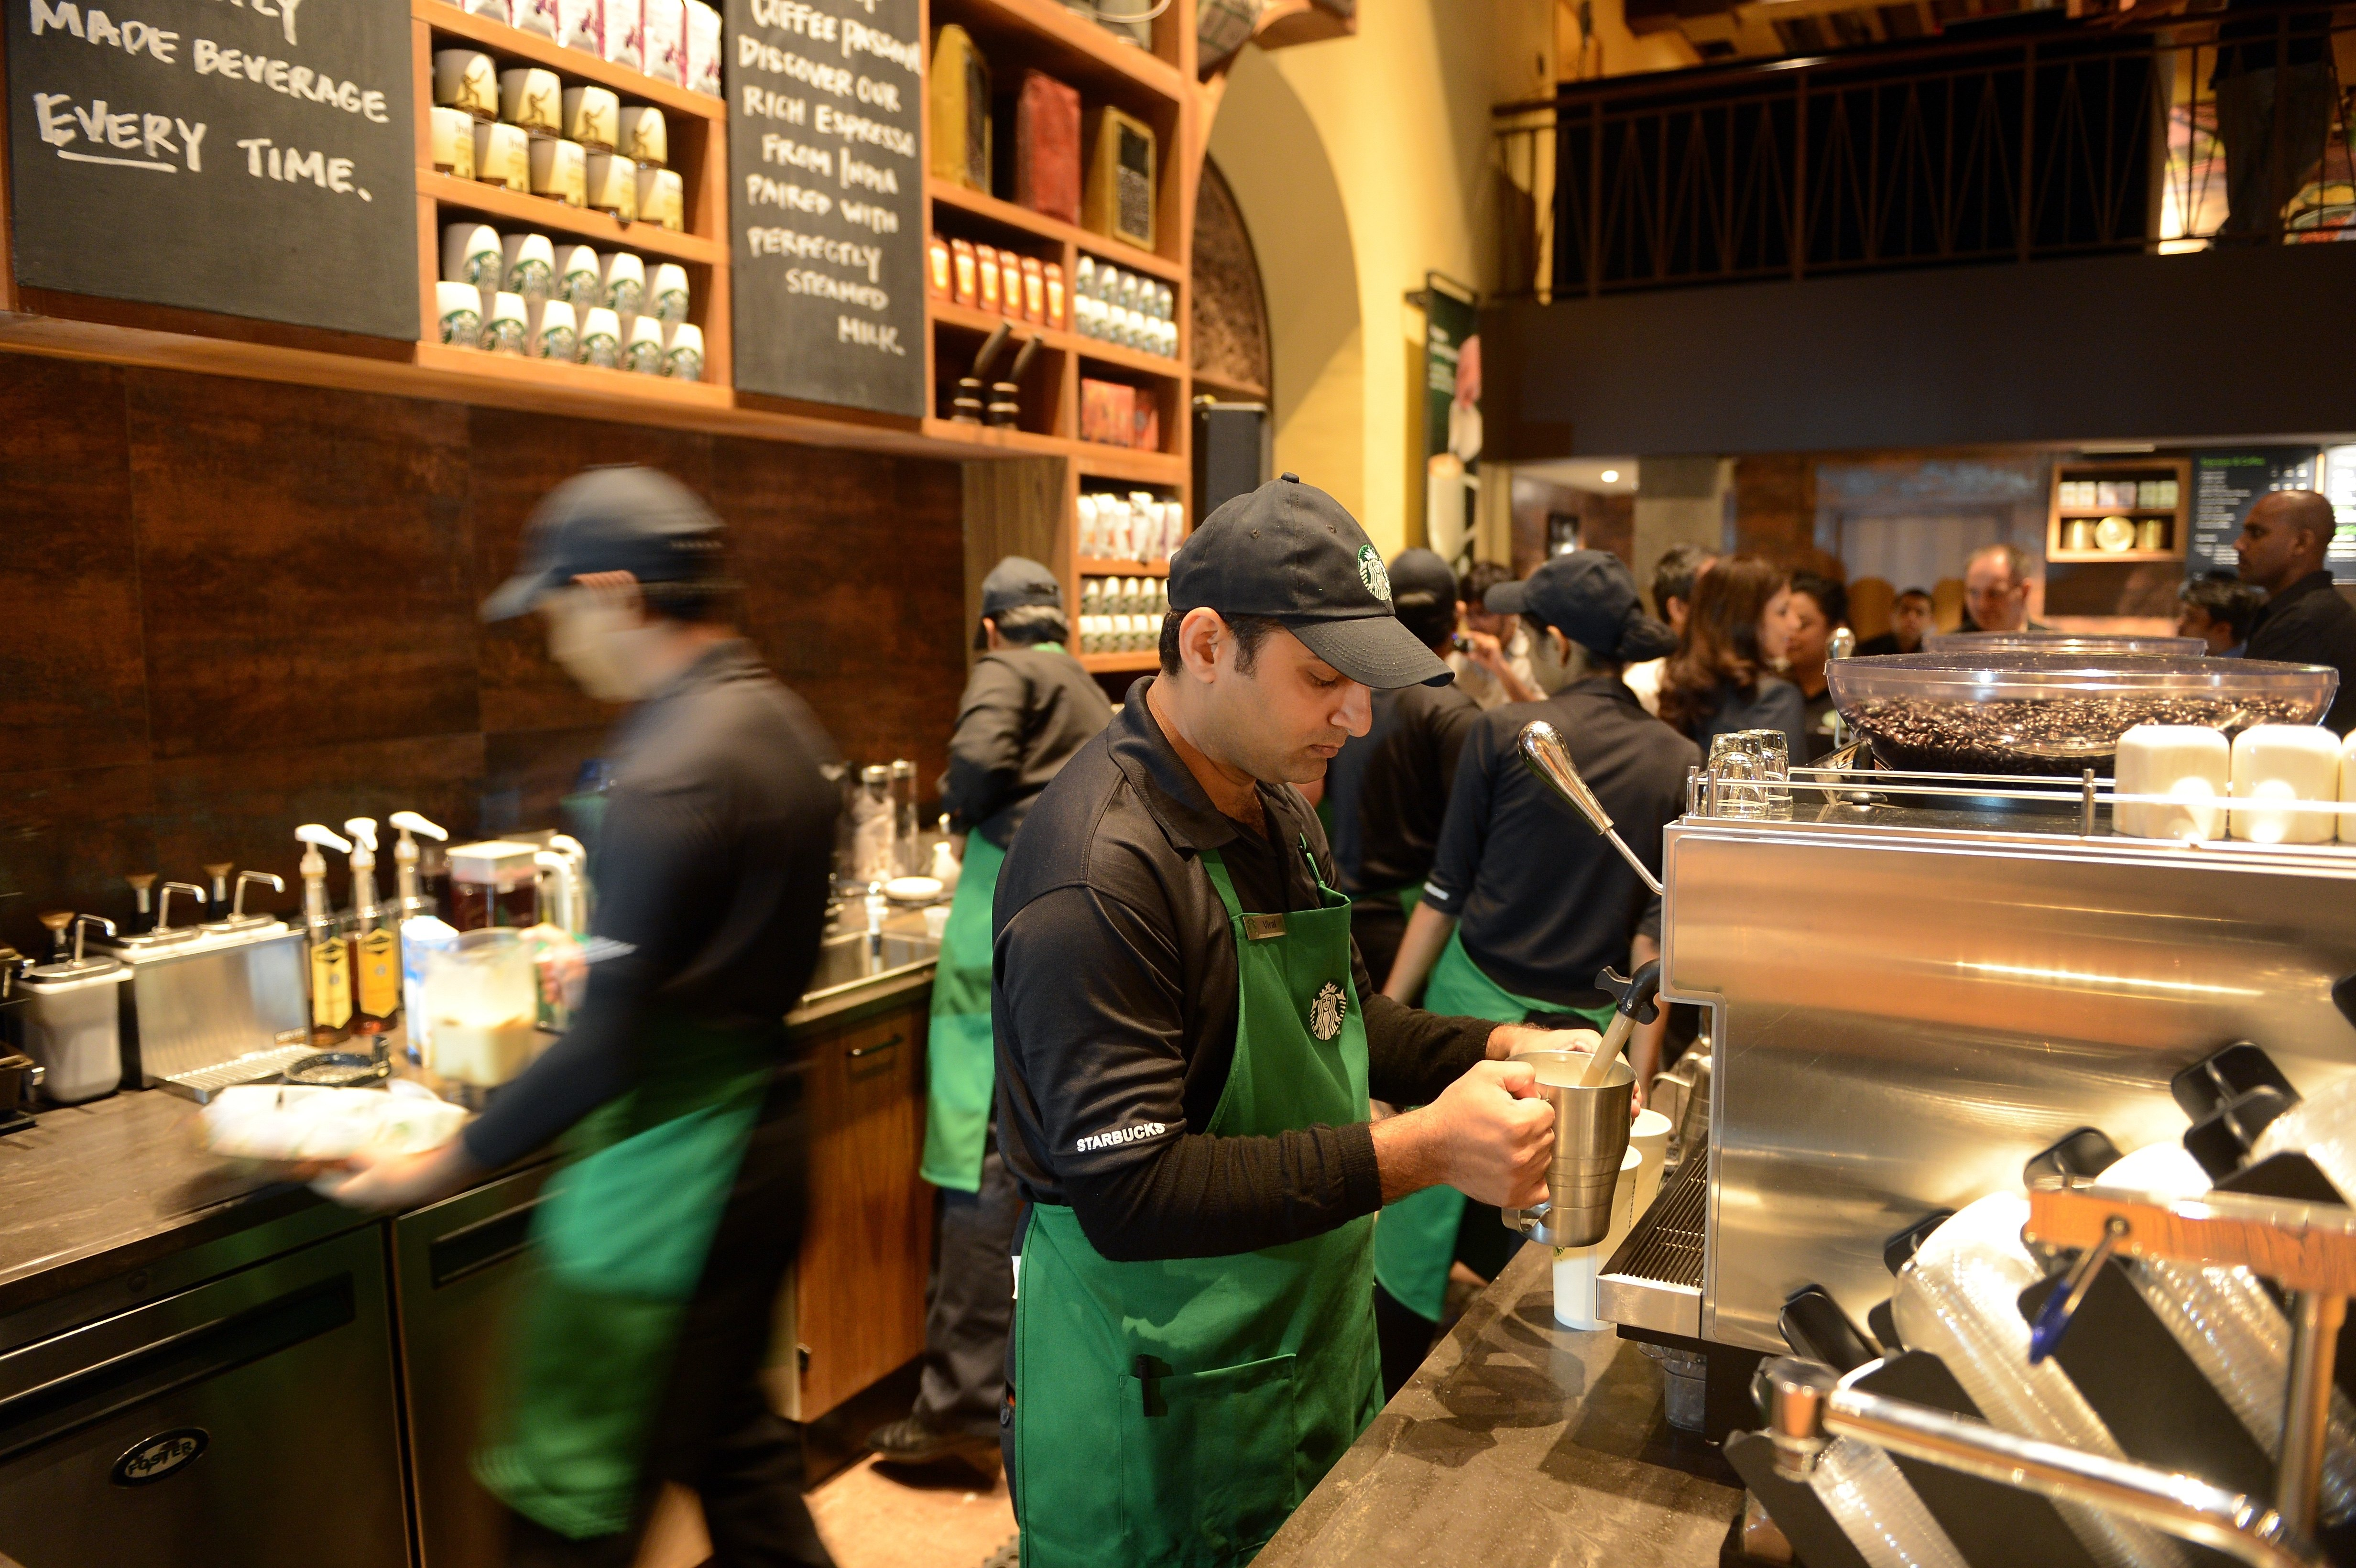 starbucks staff training About 175000 starbucks employees will gather tuesday for unconscious bias  training, an increasingly popular initiative, but with questionable.